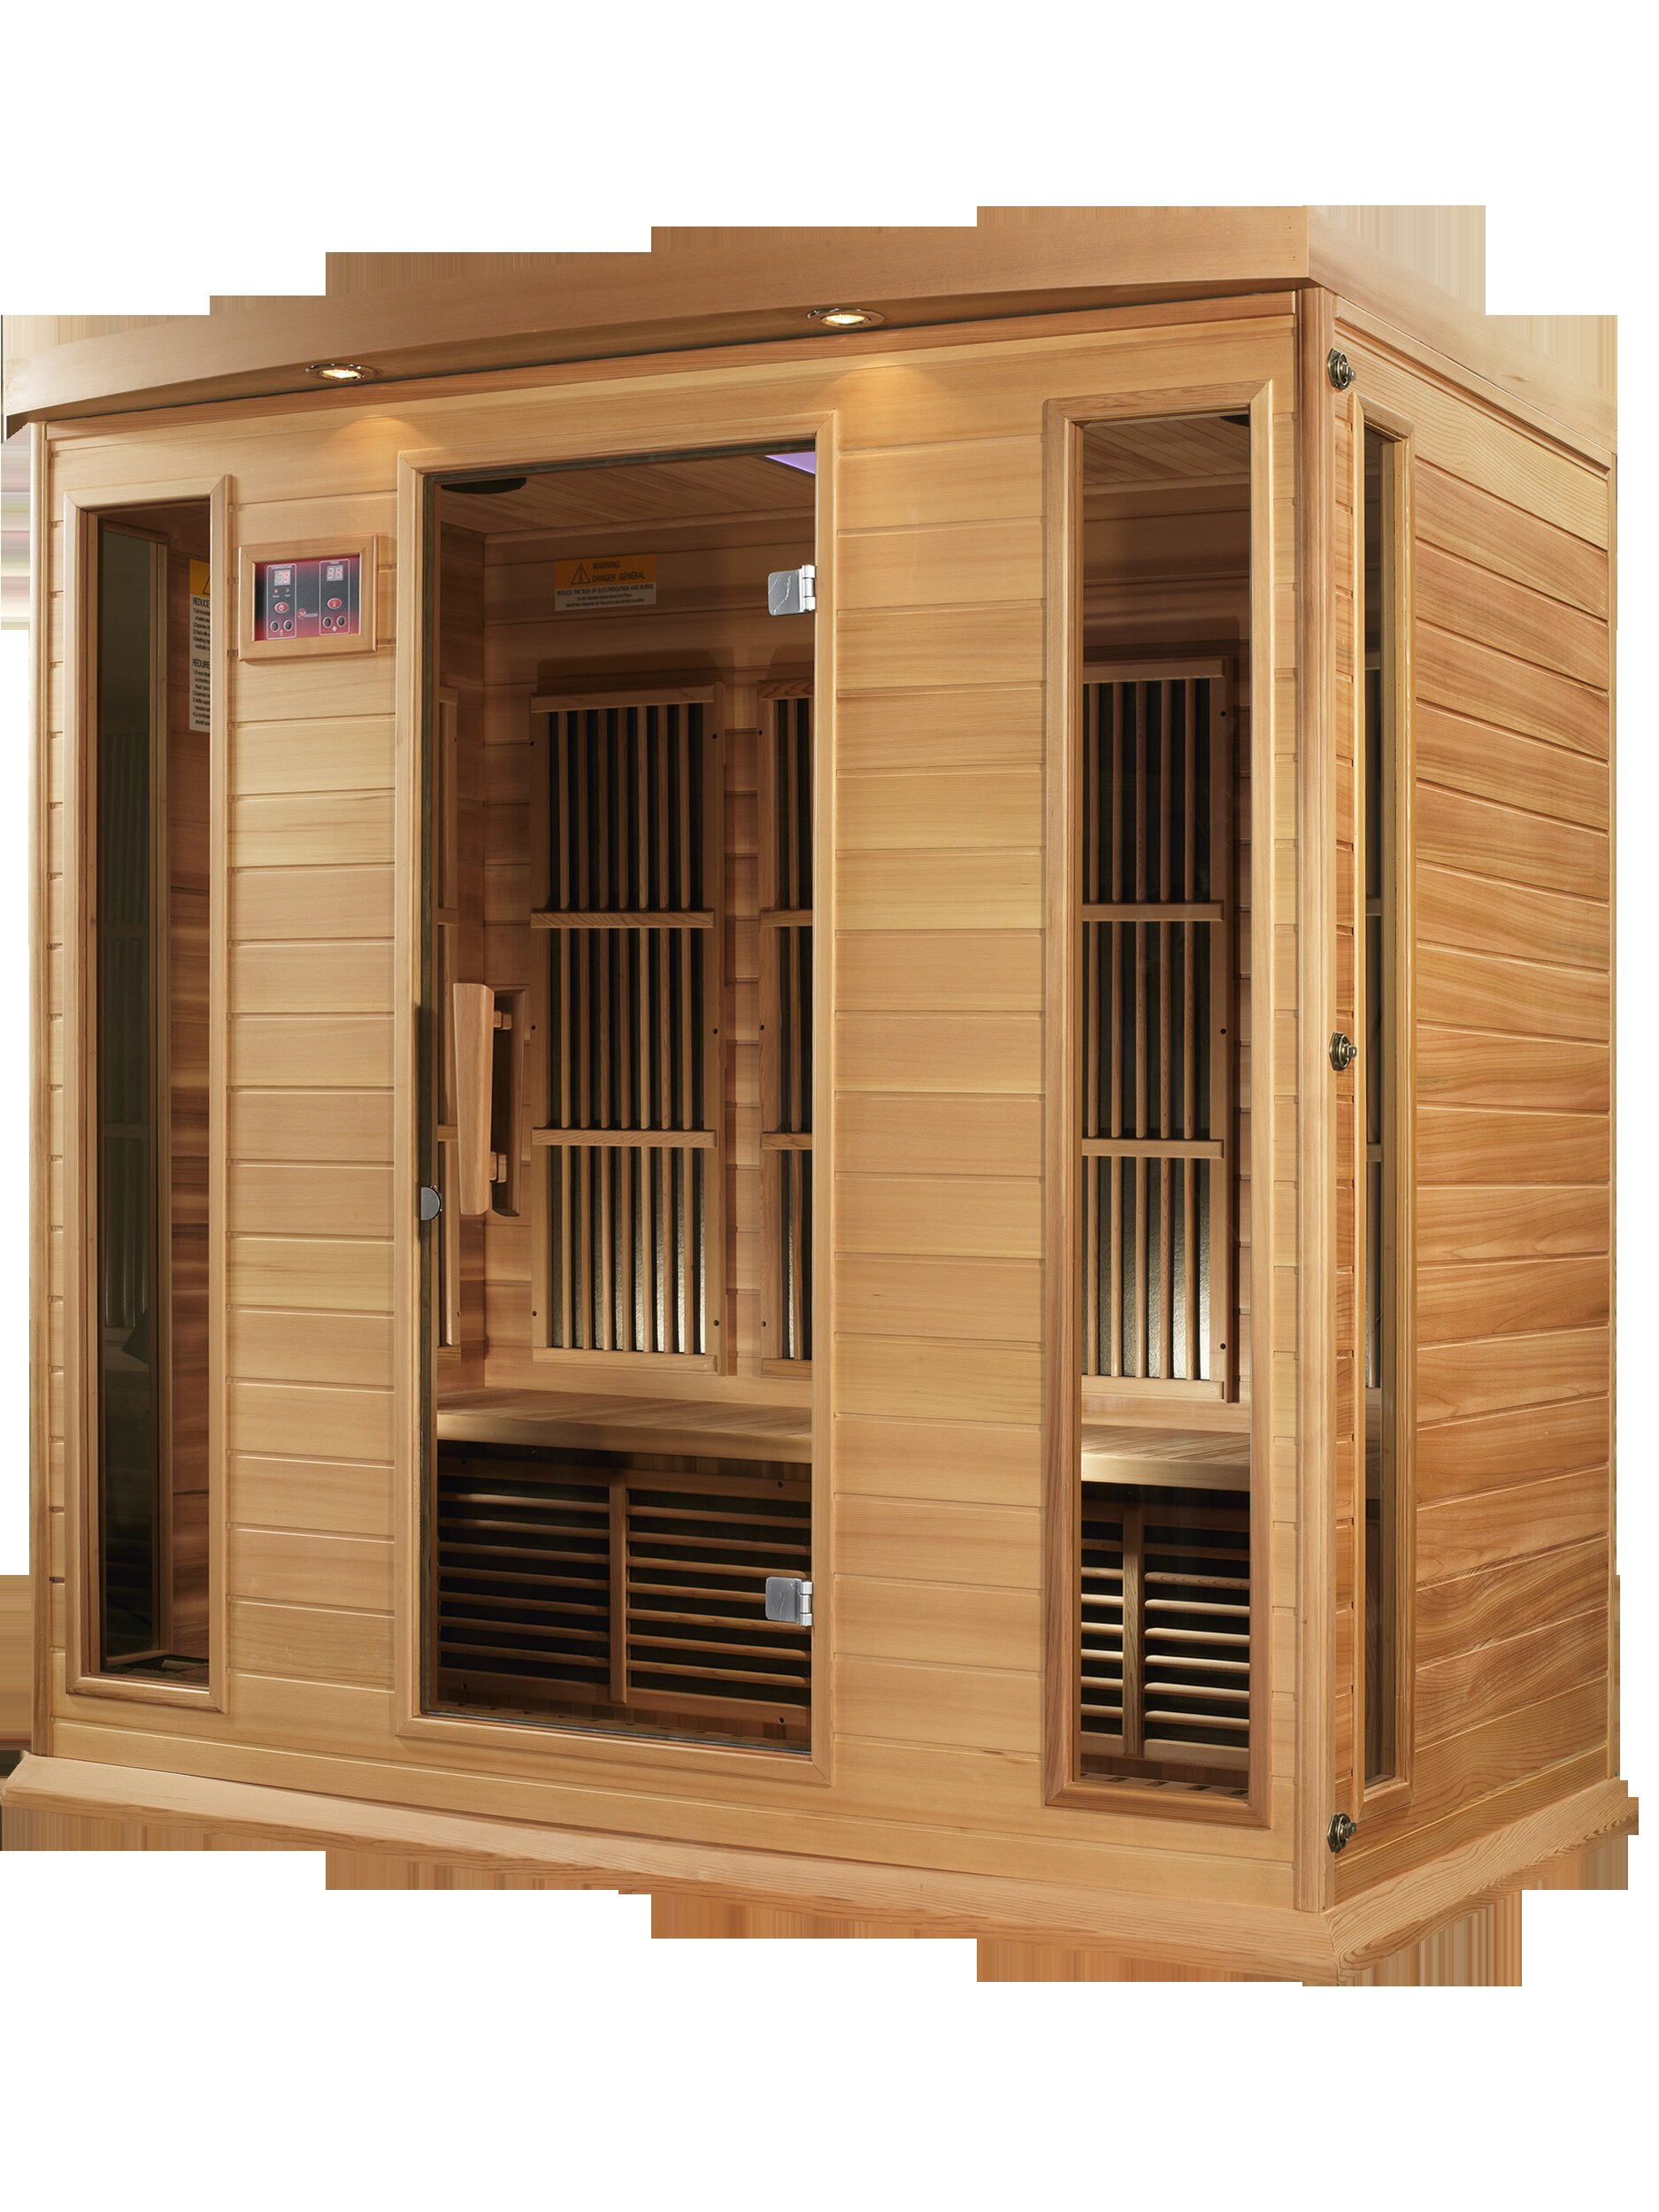 Dynamic Infrared 4 Person FAR Infrared Sauna & Reviews | Wayfair on grocery store lighting ideas, terrace lighting ideas, room lighting ideas, clubhouse lighting ideas, balcony lighting ideas, yoga studio lighting ideas, custom home lighting ideas, boat lift lighting ideas, bath lighting ideas, spa lighting ideas, bbq lighting ideas, elegant bathroom lighting ideas, police lighting ideas, wood deck lighting ideas, security lighting ideas, gym lighting ideas, solarium lighting ideas, sauna flooring, roof deck lighting ideas, beachfront lighting ideas,